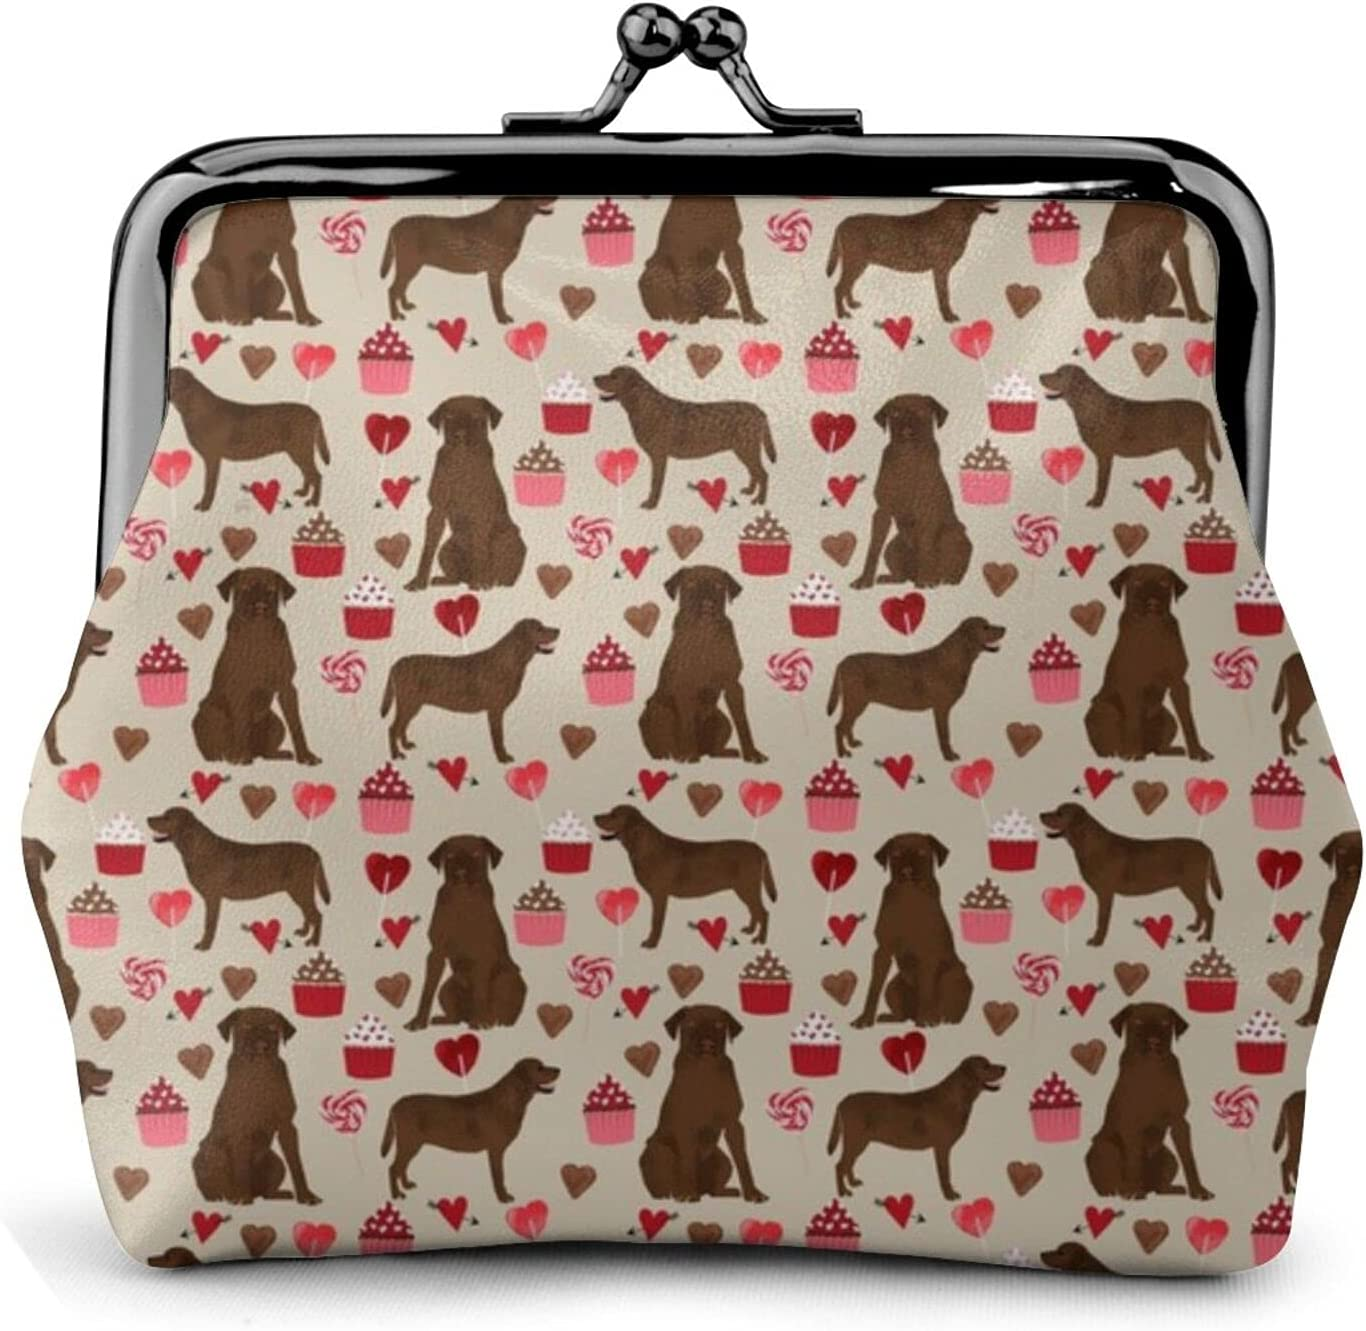 Chocolate Labrador Dog 1556 Coin Purse Retro Money Pouch with Kiss-lock Buckle Small Wallet for Women and Girls